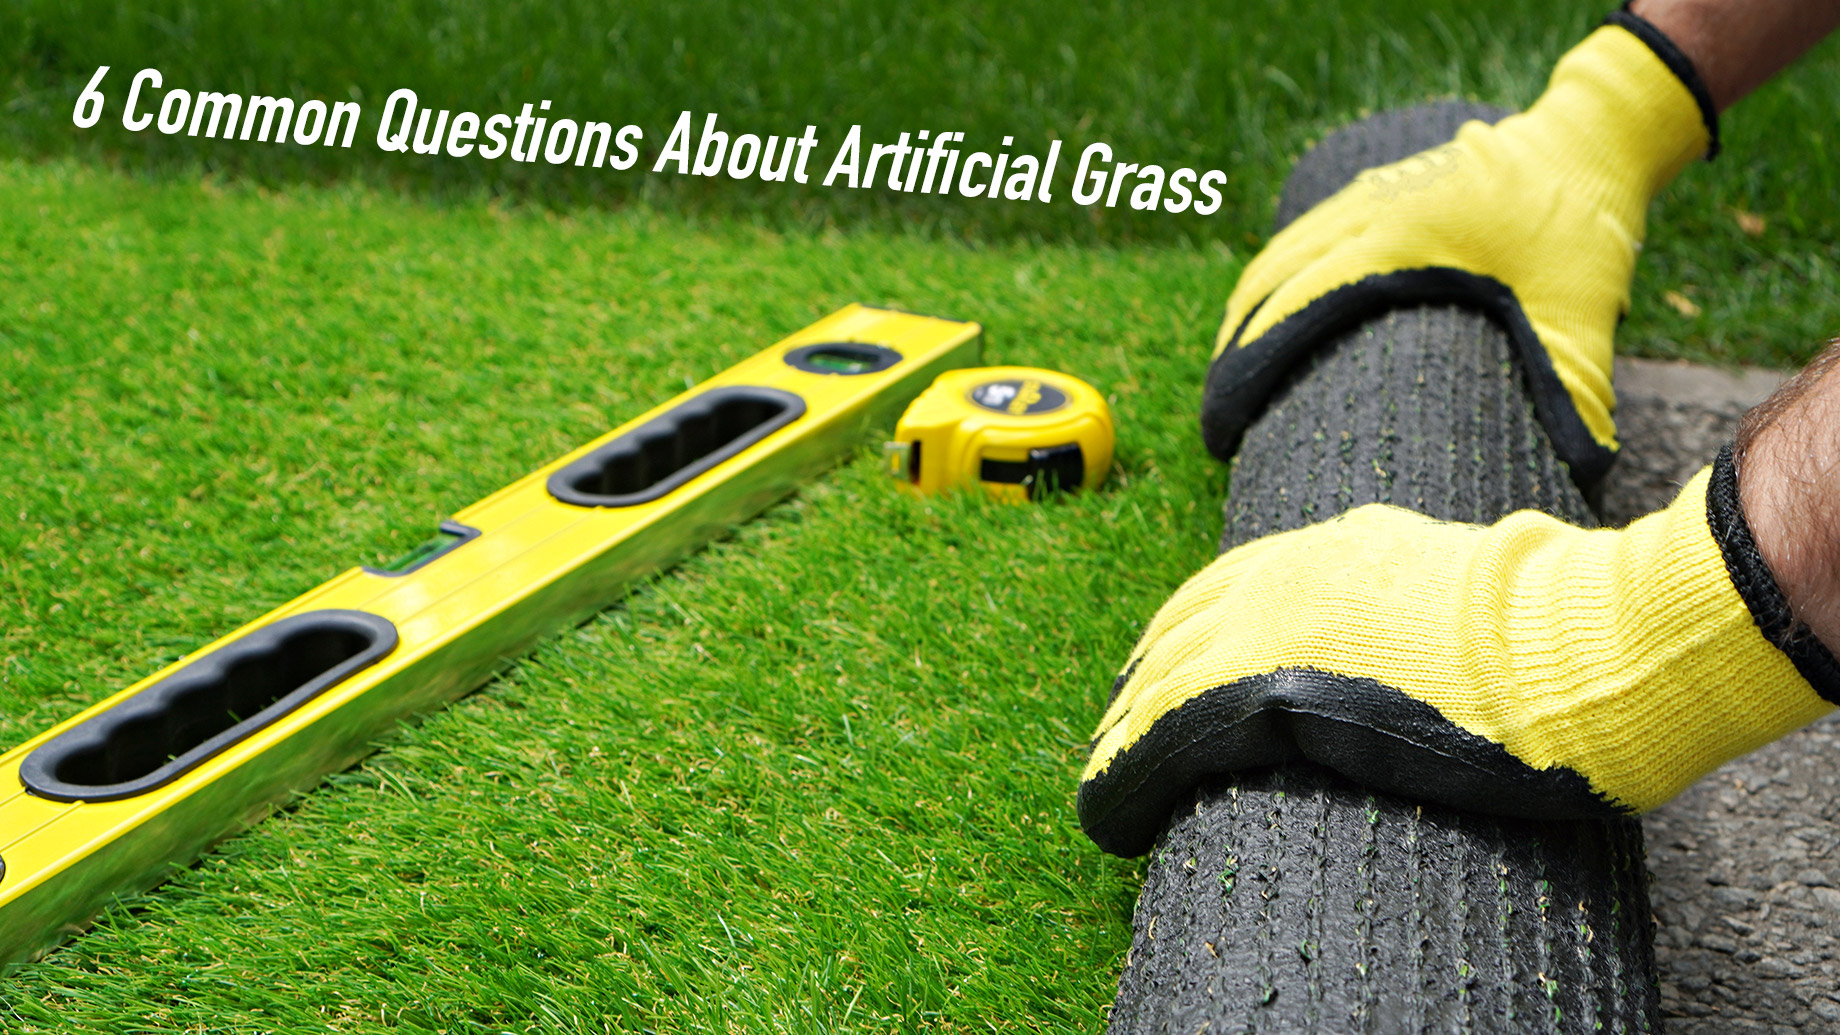 6 Common Questions About Artificial Grass